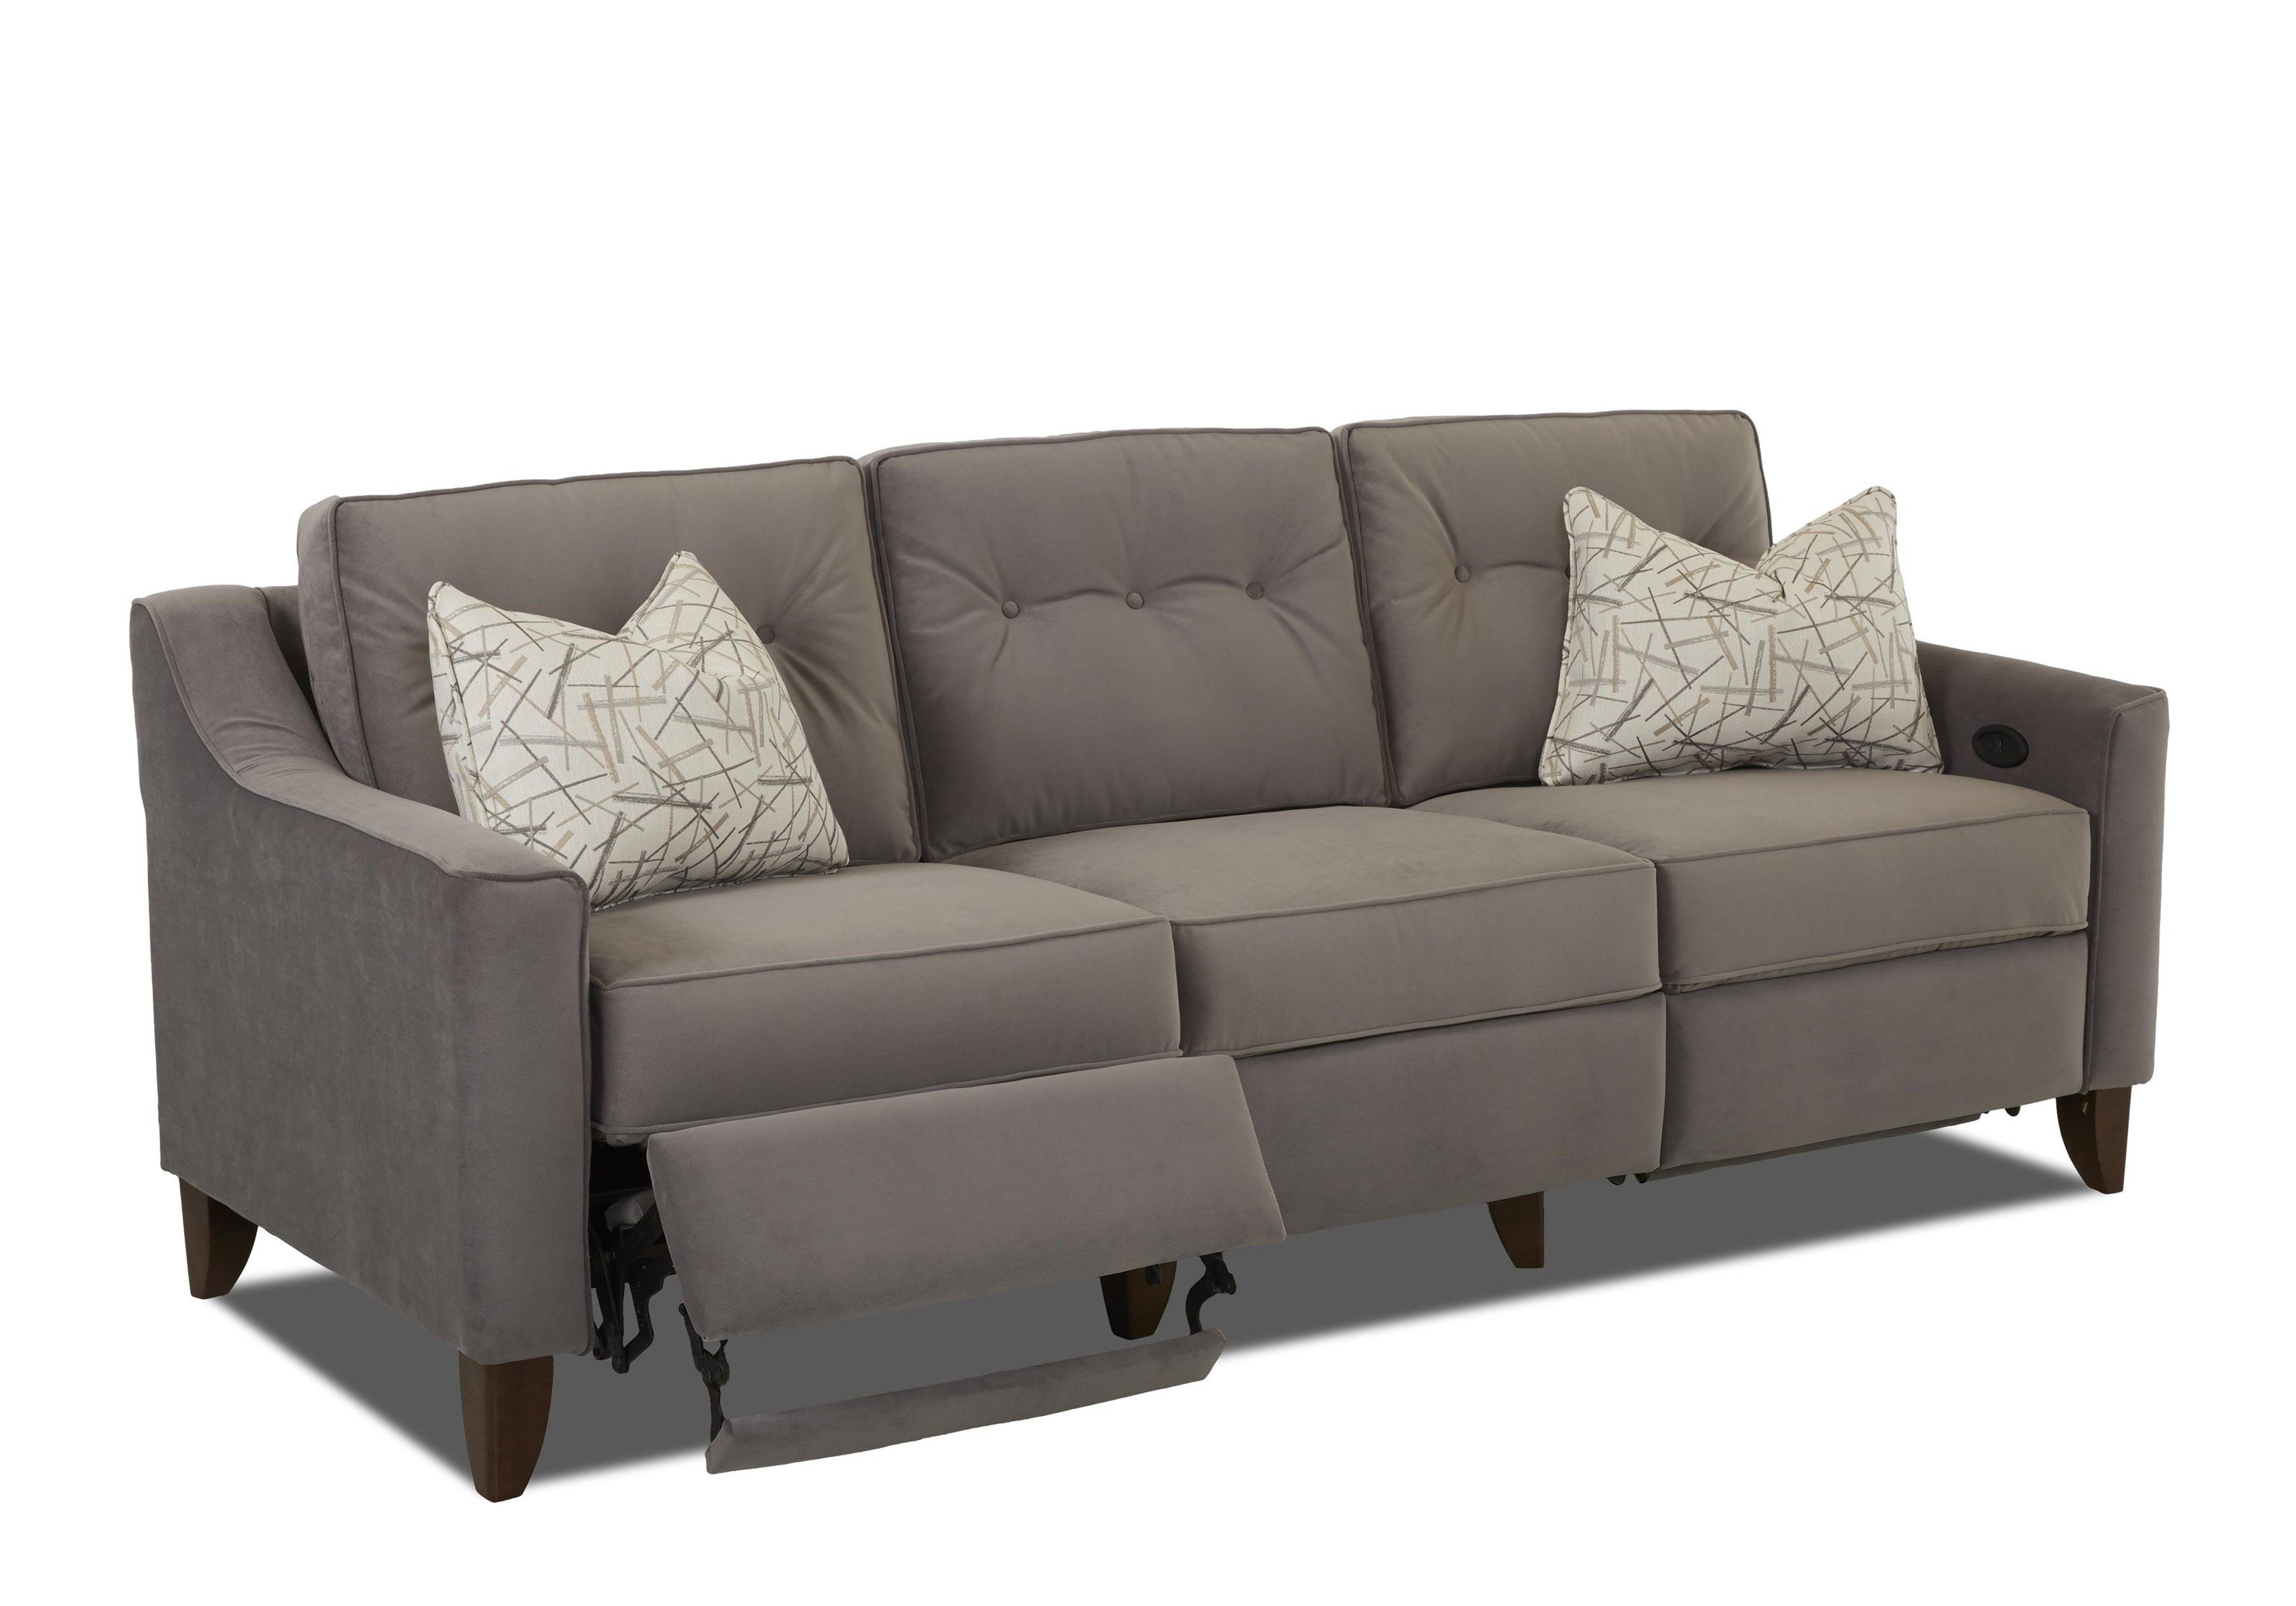 Modern Reclining Couch Reclining Sofa Living Room Modern Recliner Sofa Leather Reclining Sofa